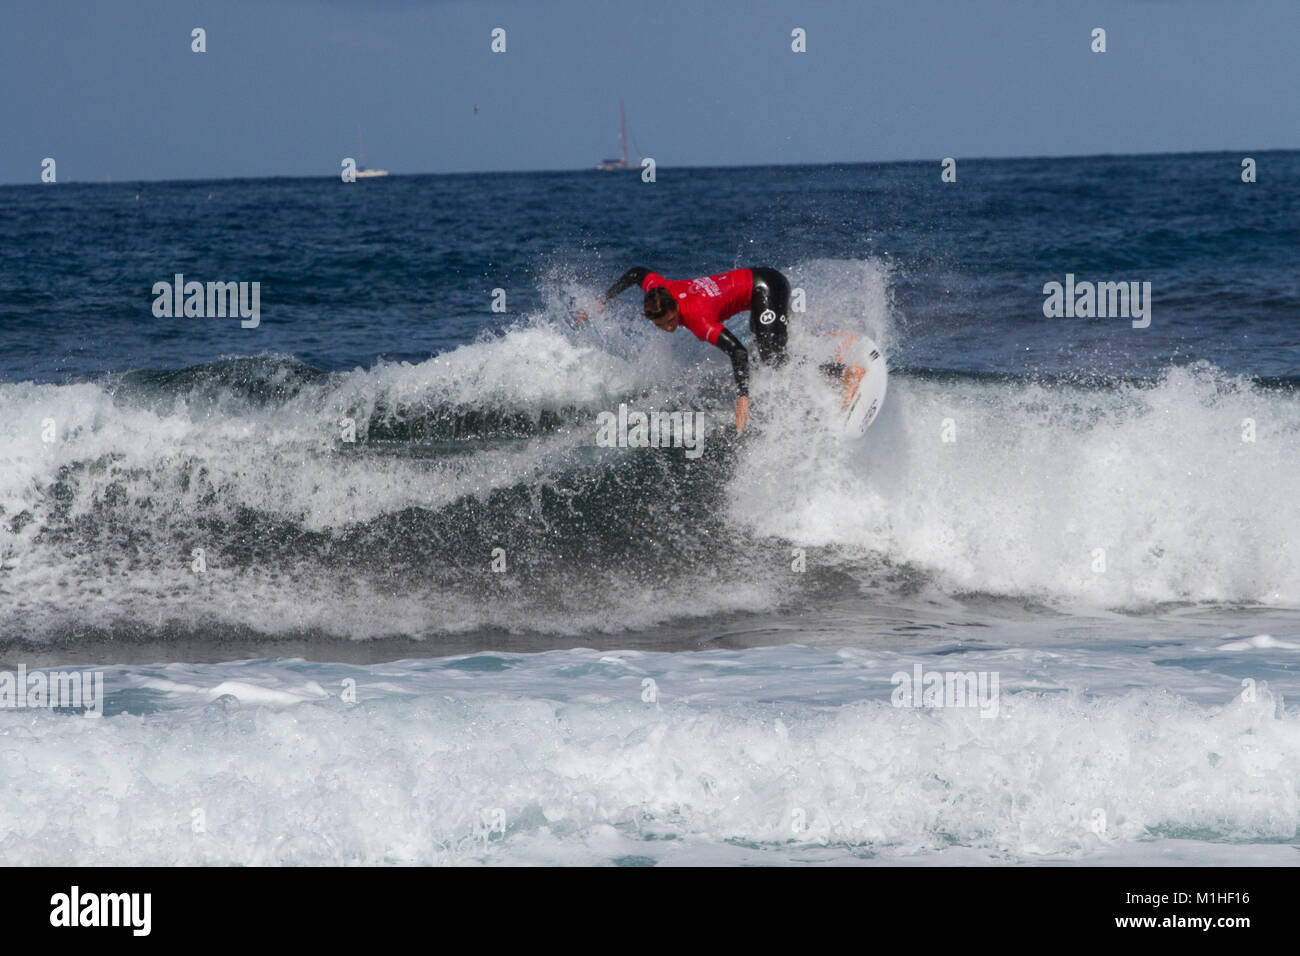 Arona, Spain. 30th Jan, 2018. First day off the Las Americas Pro surfing for the World ChampionsLeague with participants - Stock Image